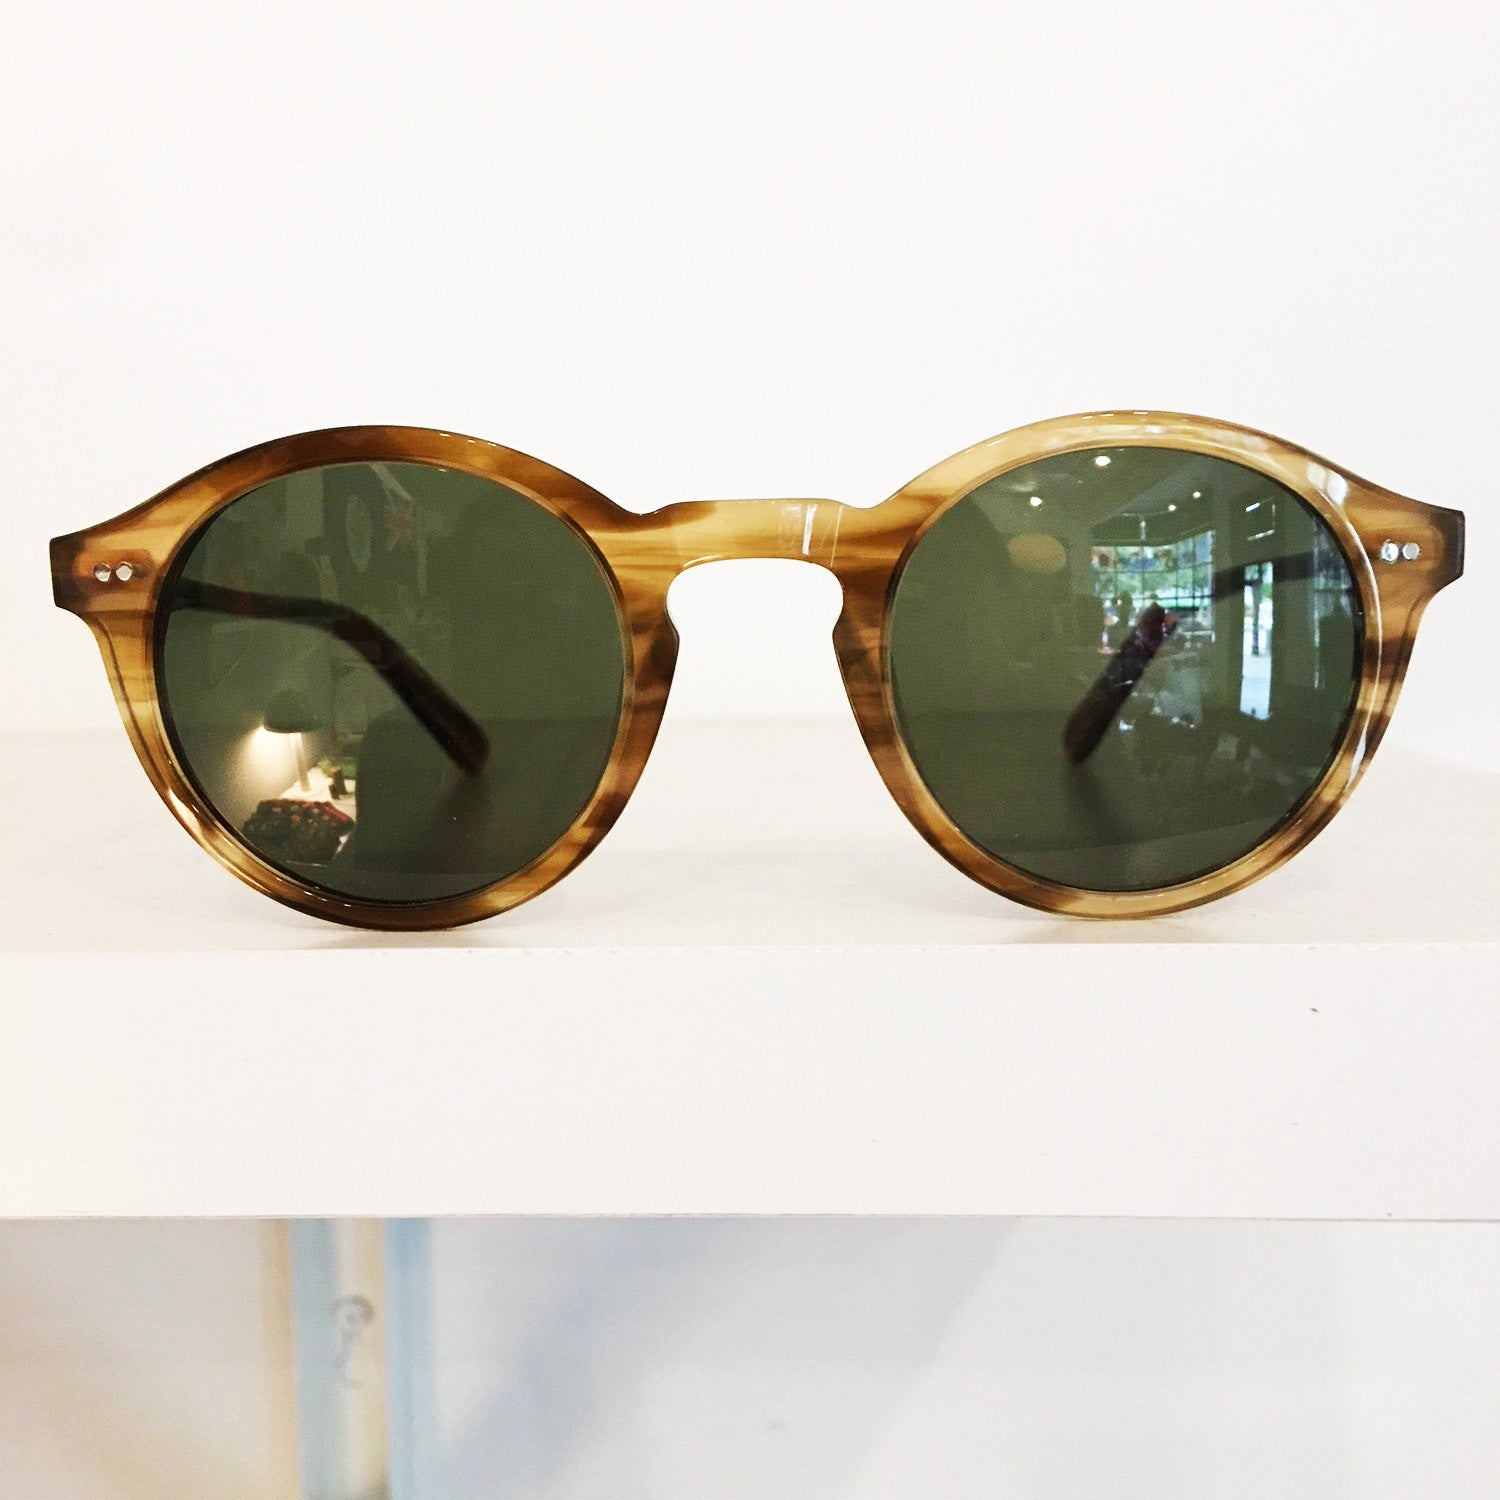 Old Focals Founders Sunglasses